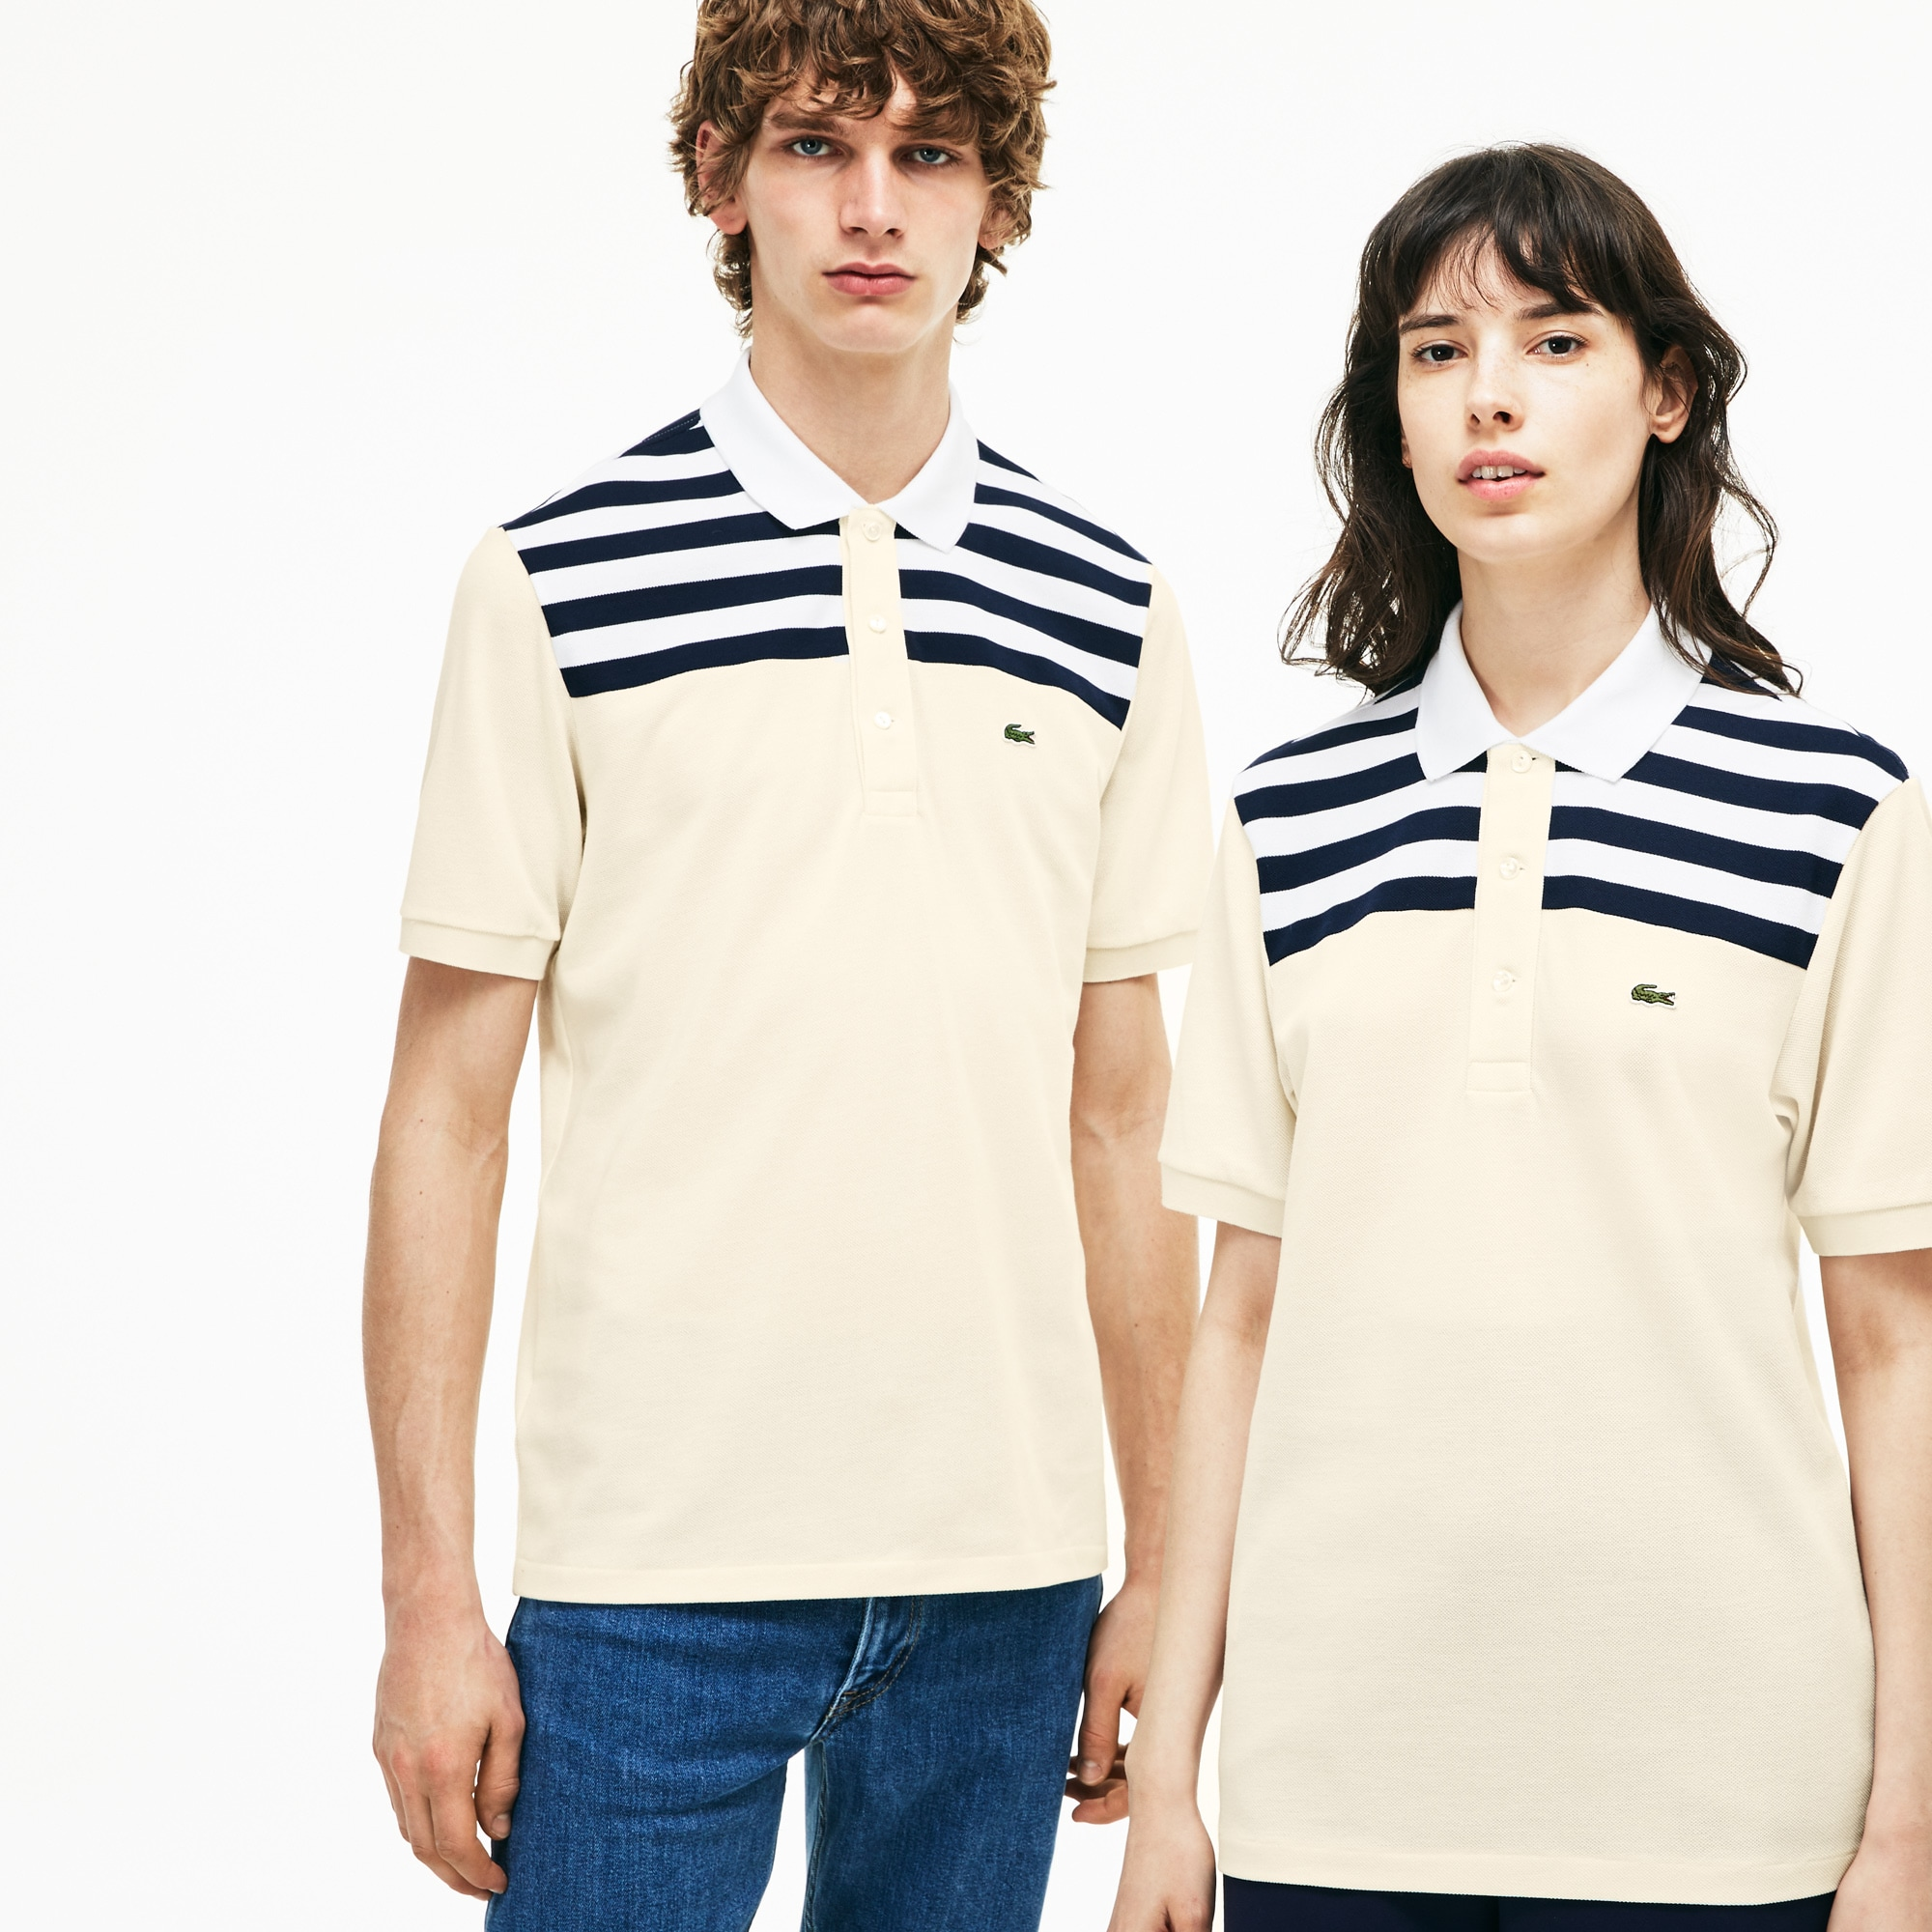 Unisex L.12.12 Lacoste polo, limited edition 85-jarig jubileum